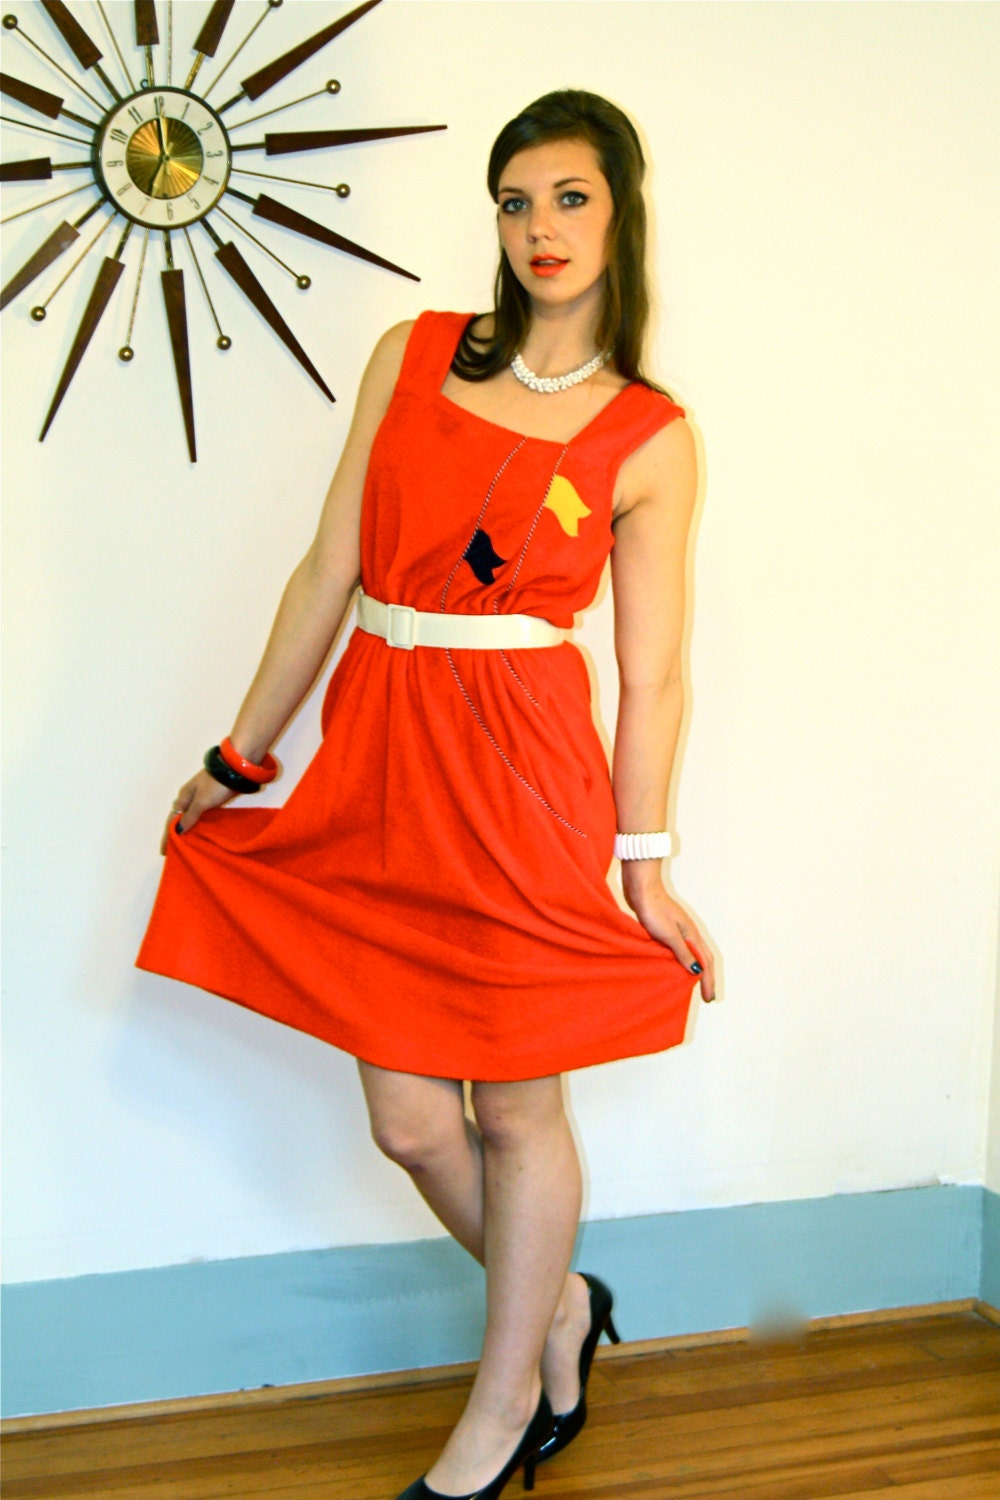 dbf7f6438b Vintage volup dress, Red nautical theme sailor dress, 1970s beach ...